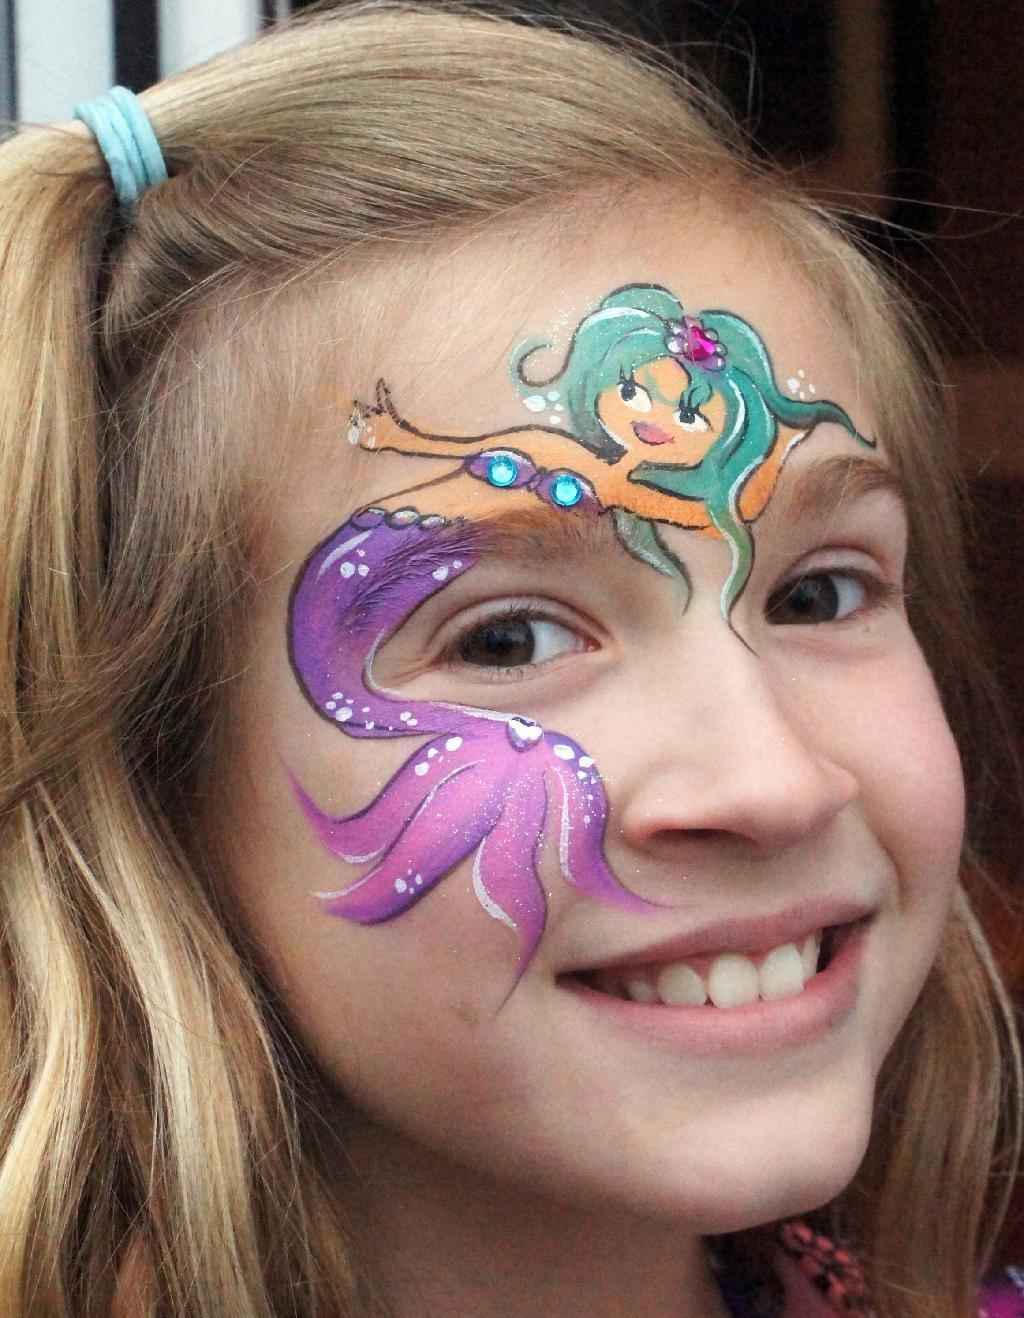 Mermaid Video Watch how to do this face paint idea 1 Sponge blue face paint over the eyes and up onto the forehead 2 With a brush paint a white